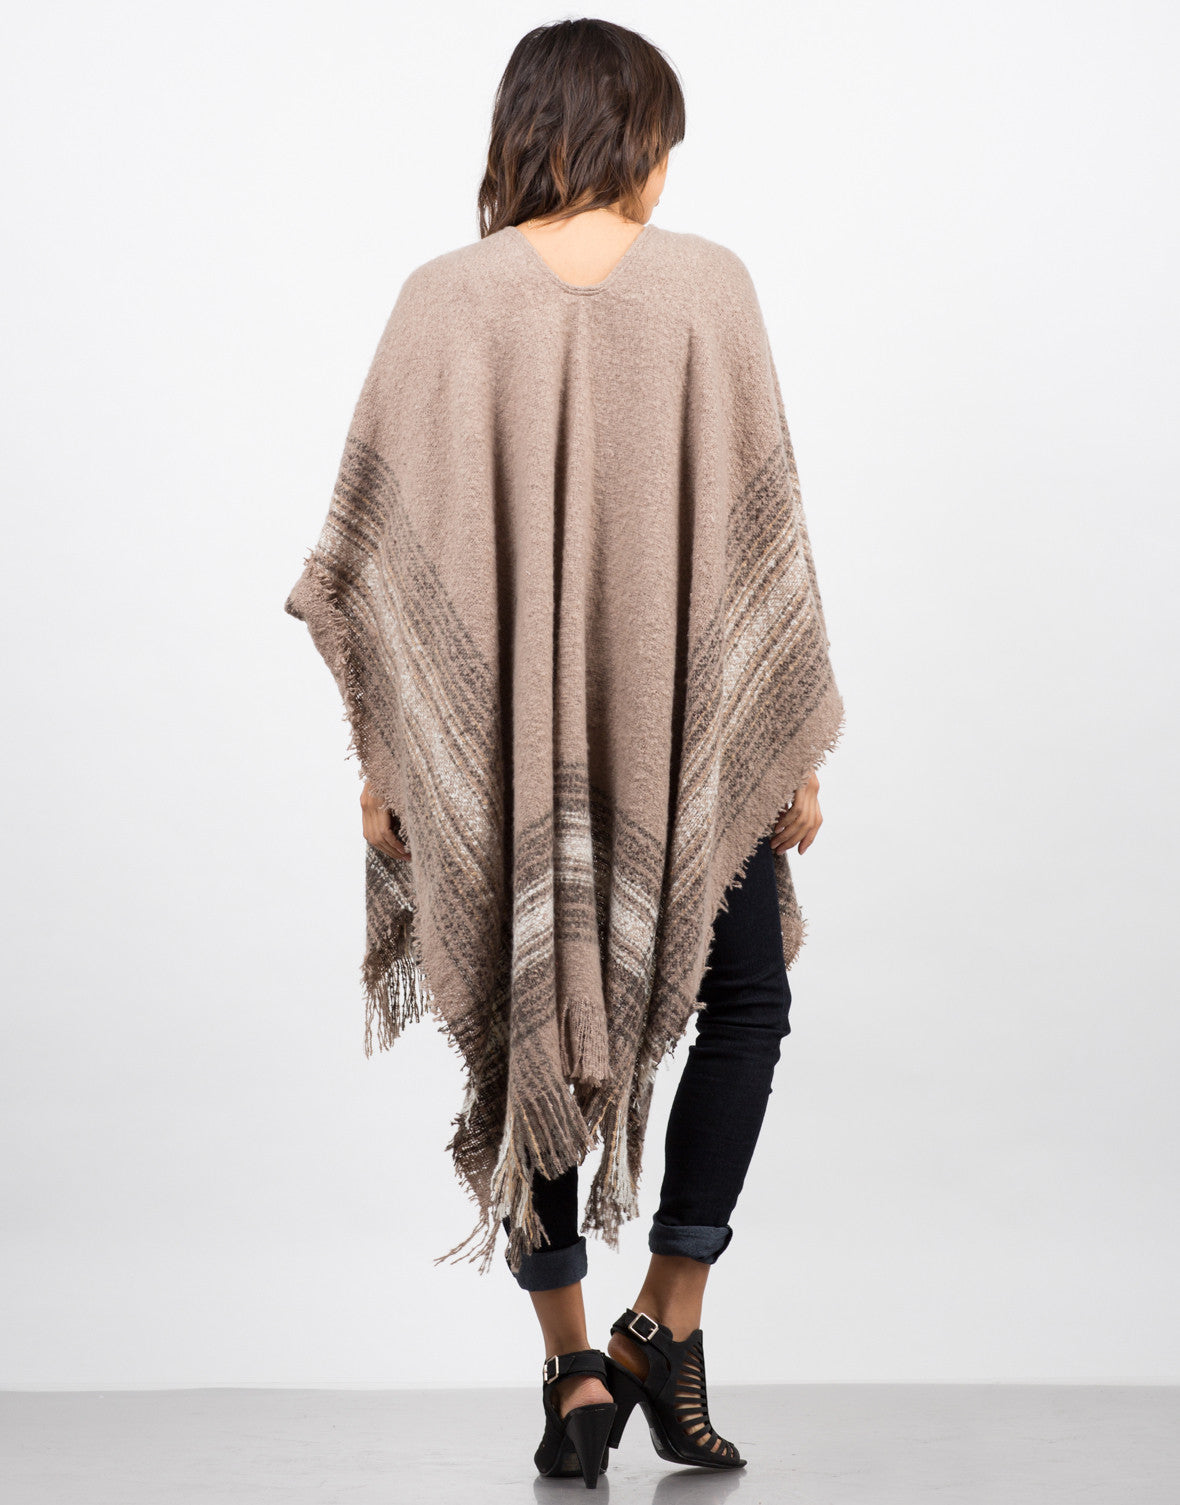 Back View of Cozy Oversized Poncho